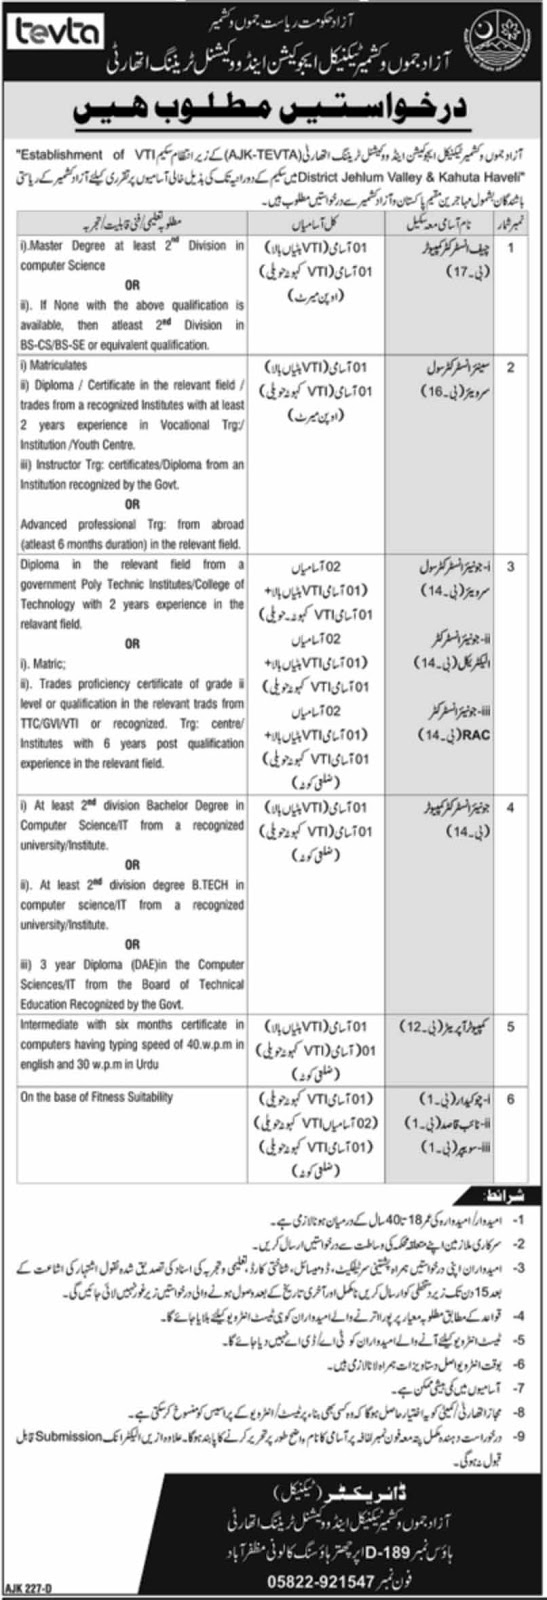 Latest Jobs in Ajk Tevta Jan 2020